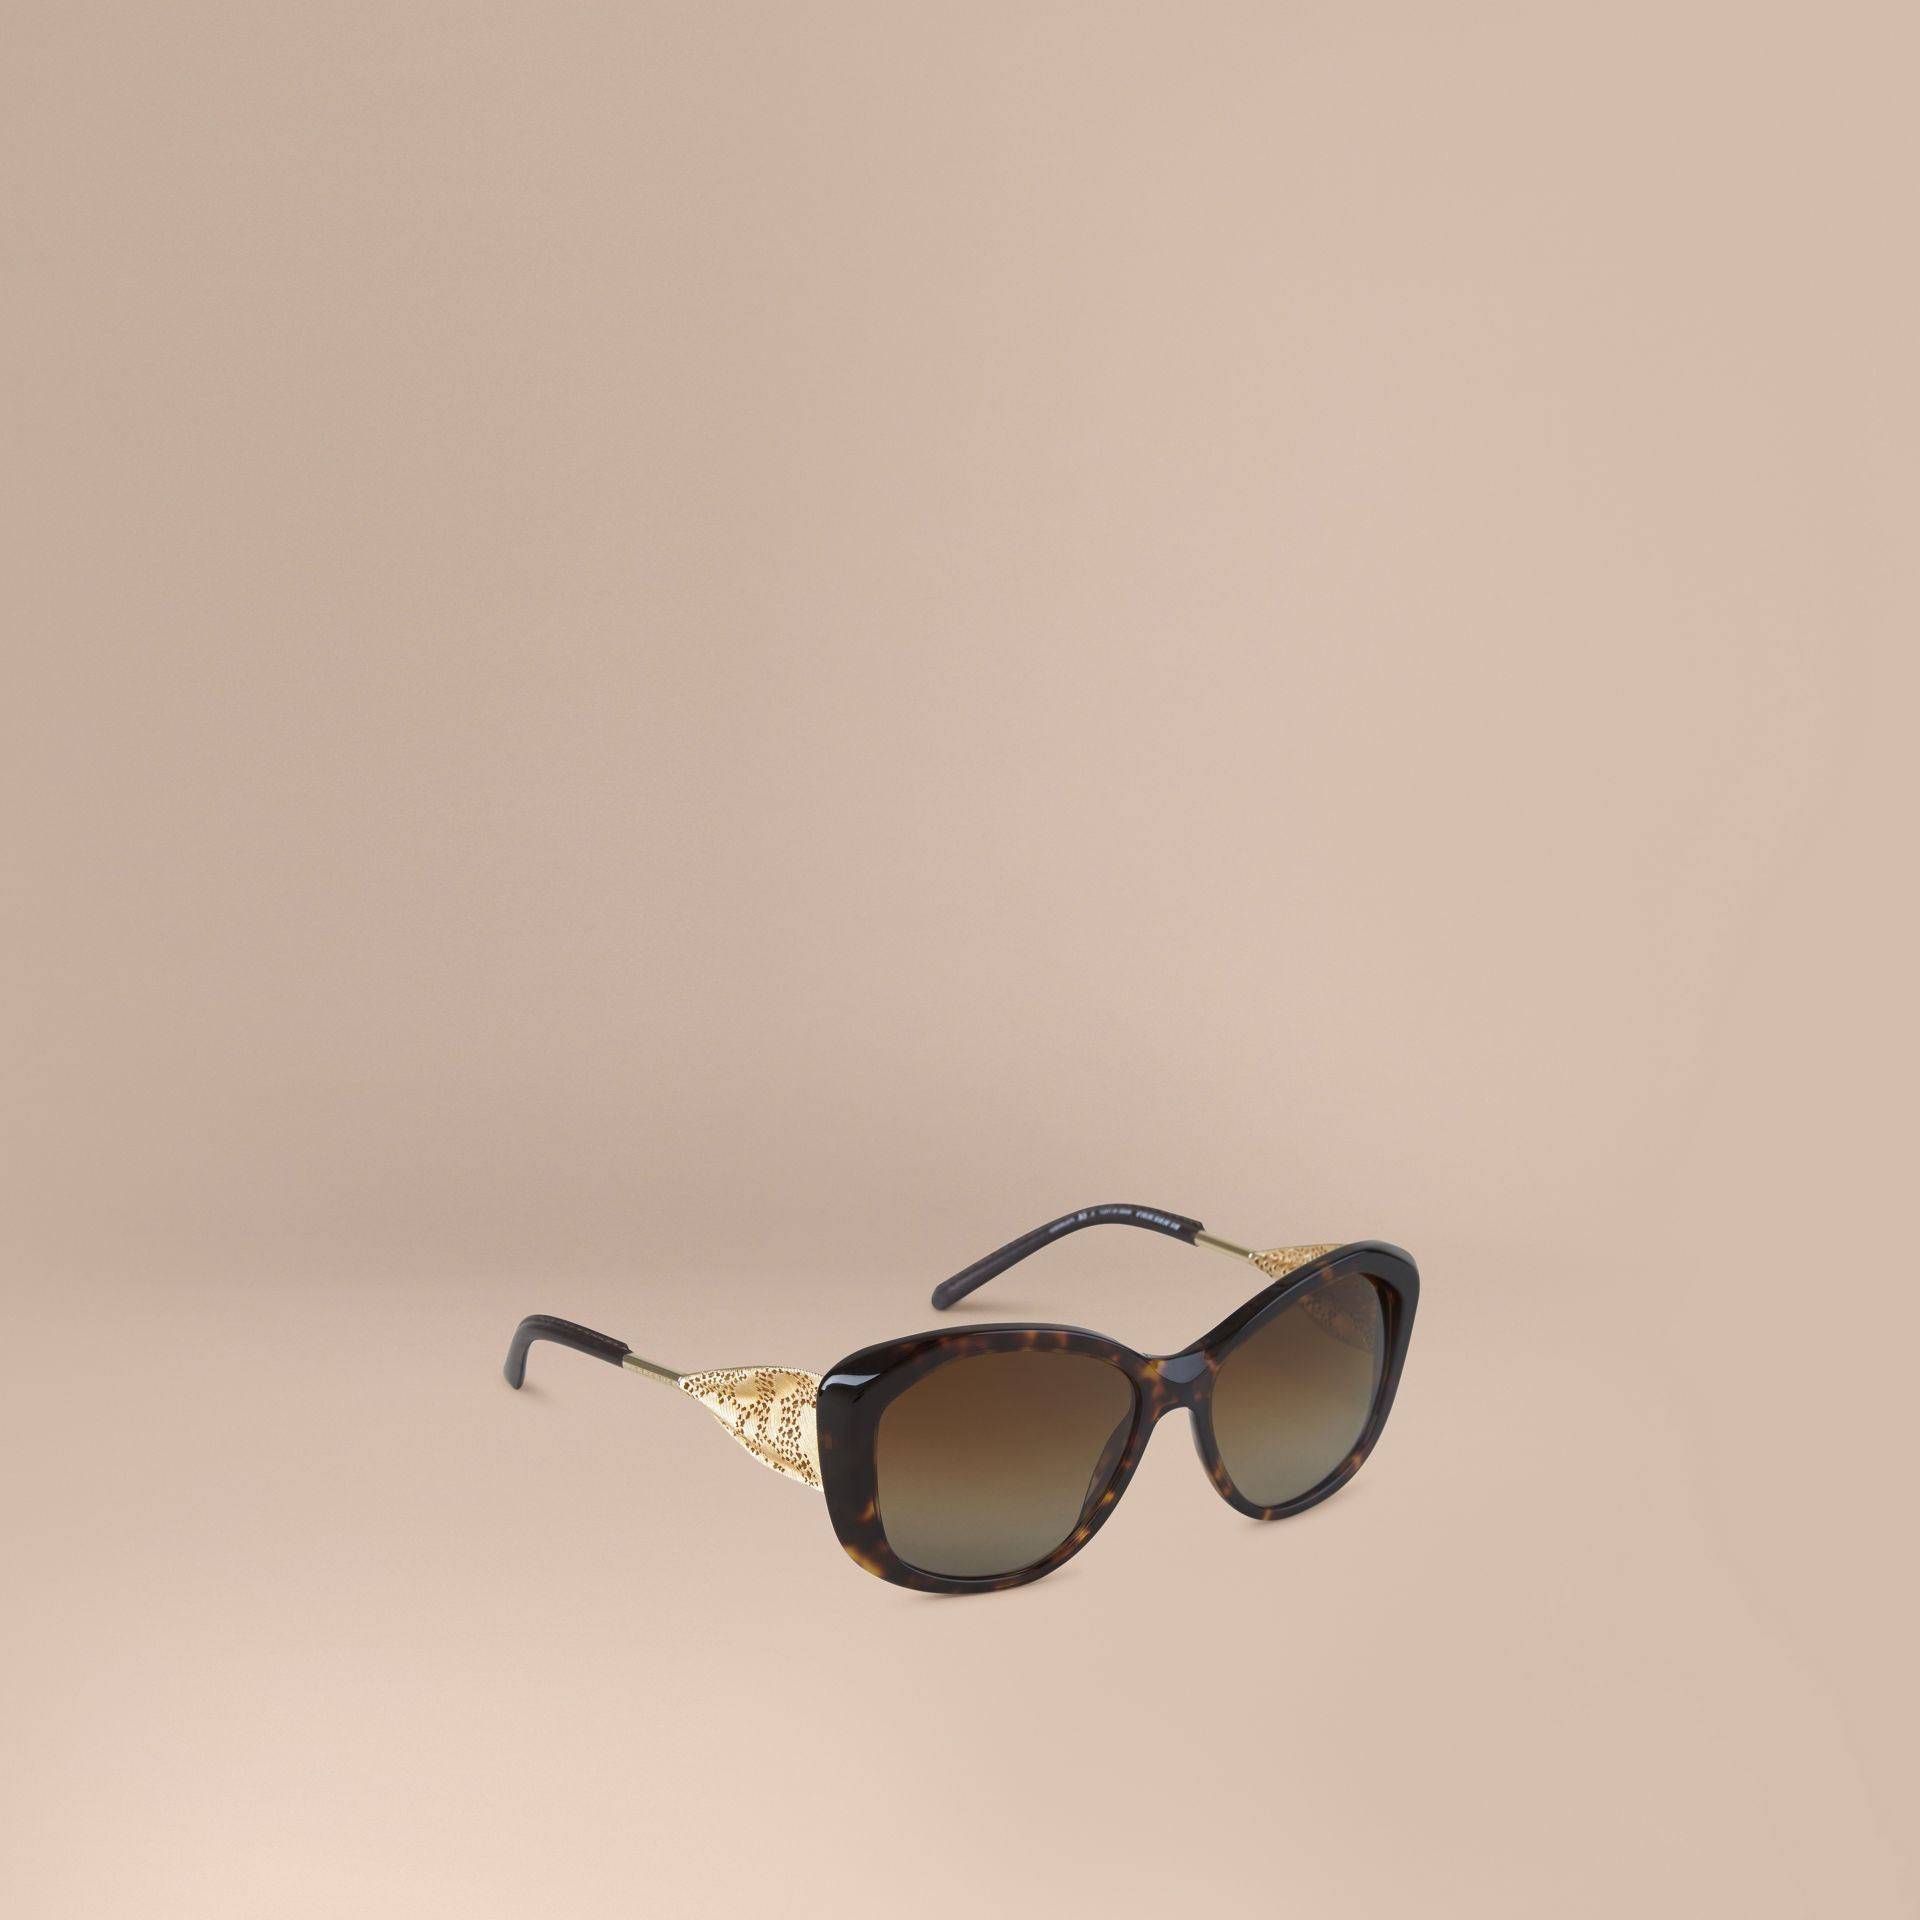 Gabardine Collection Square Frame Sunglasses in Tortoise Shell - gallery image 1